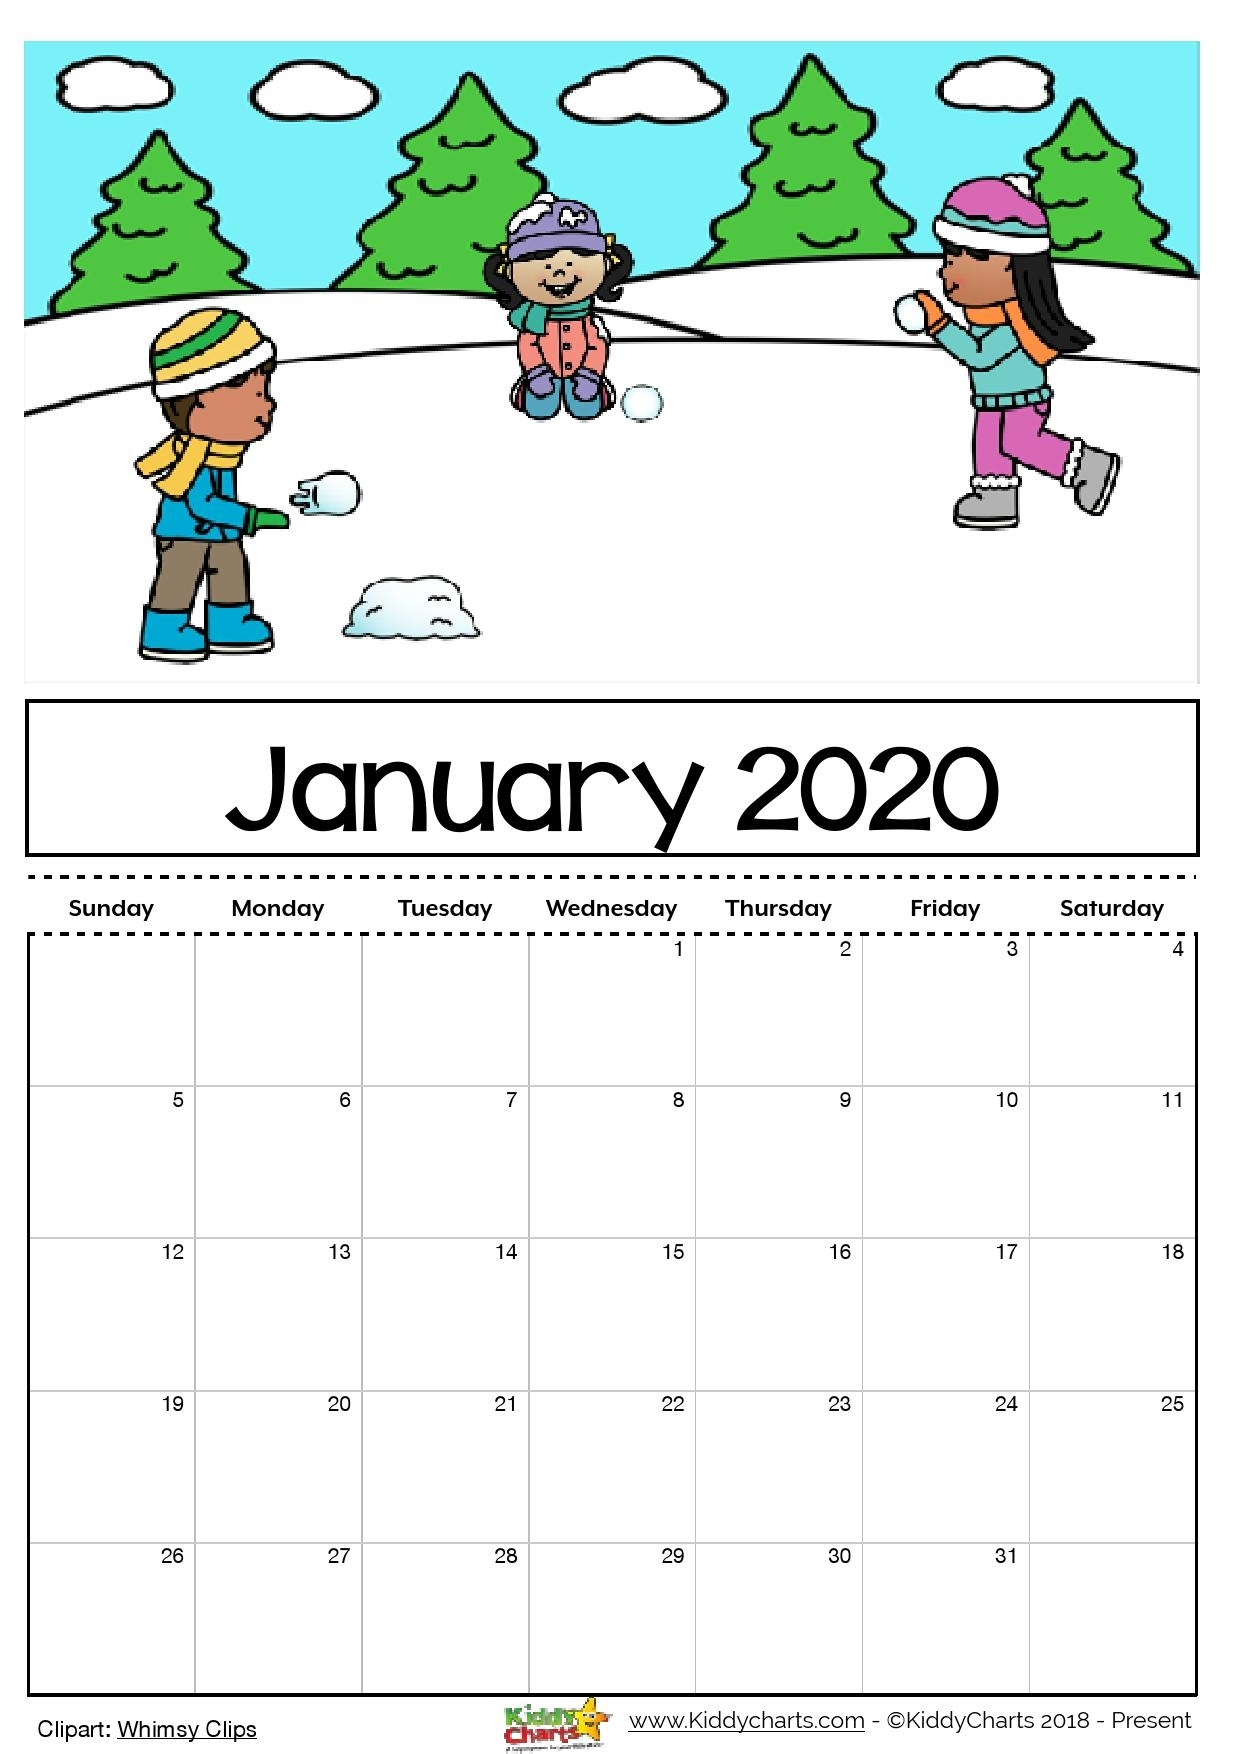 2020 Calendar Printable For Kids And Adults